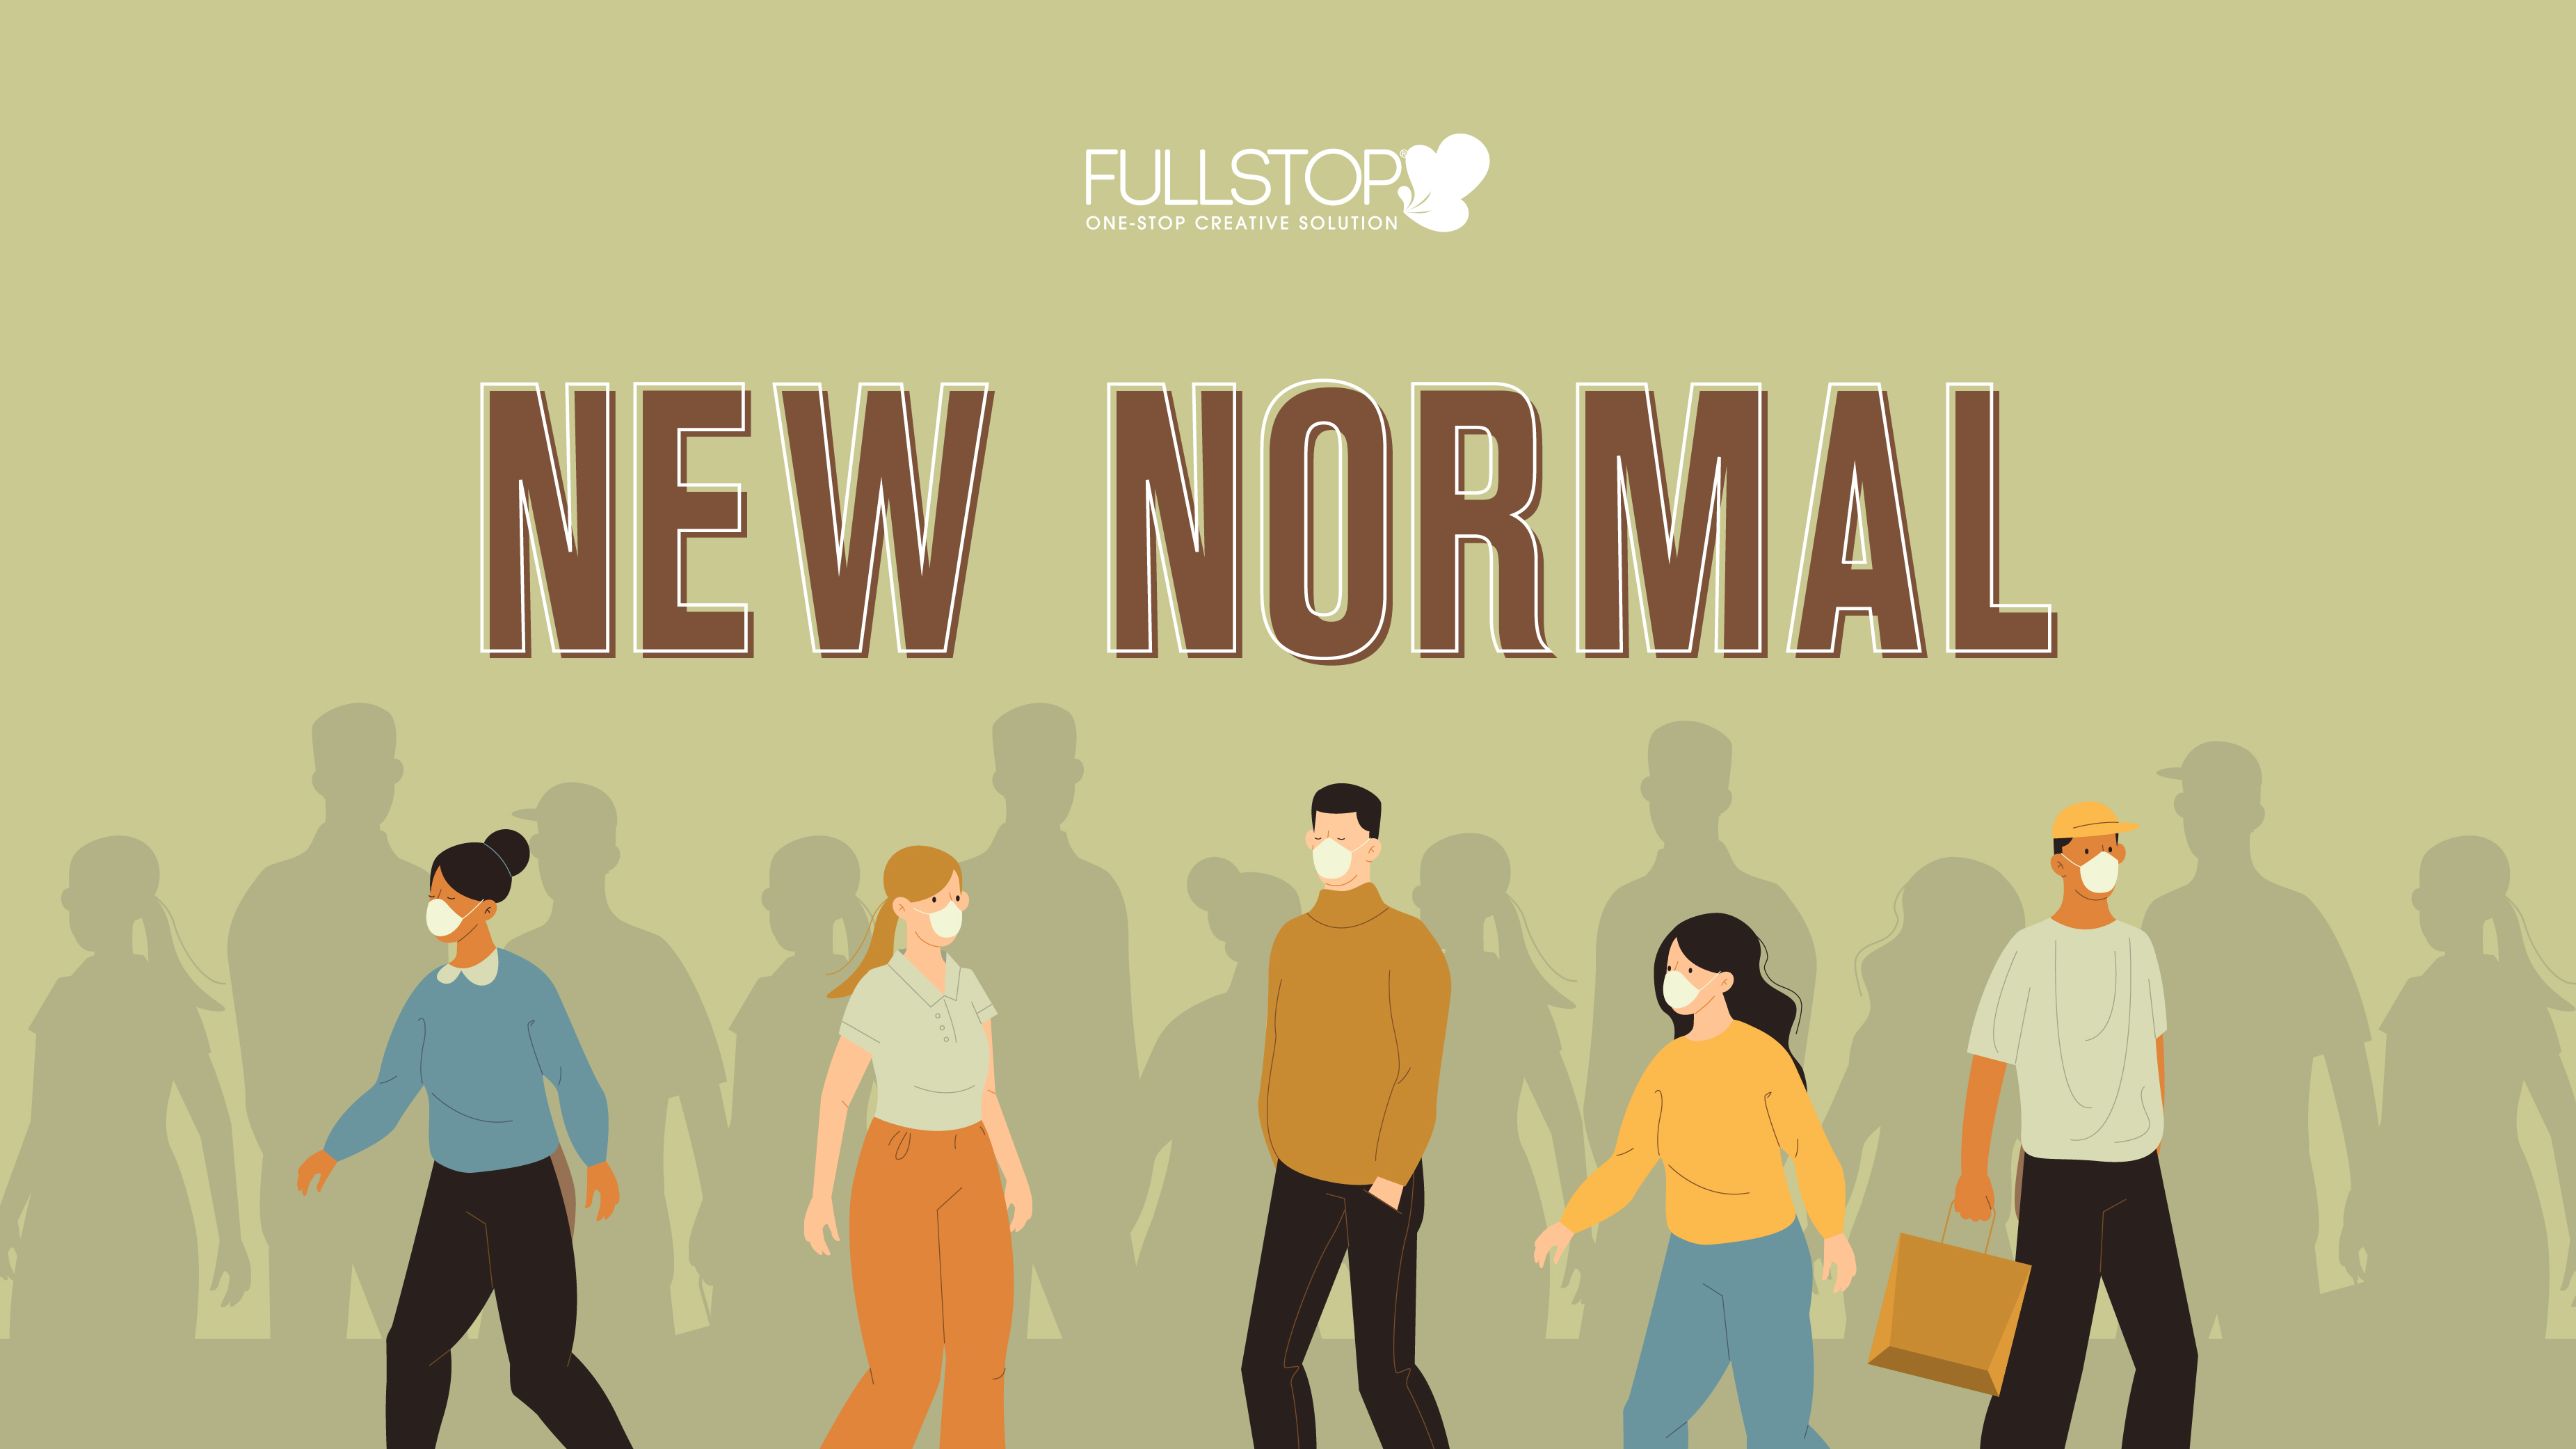 Welcoming the New Normal